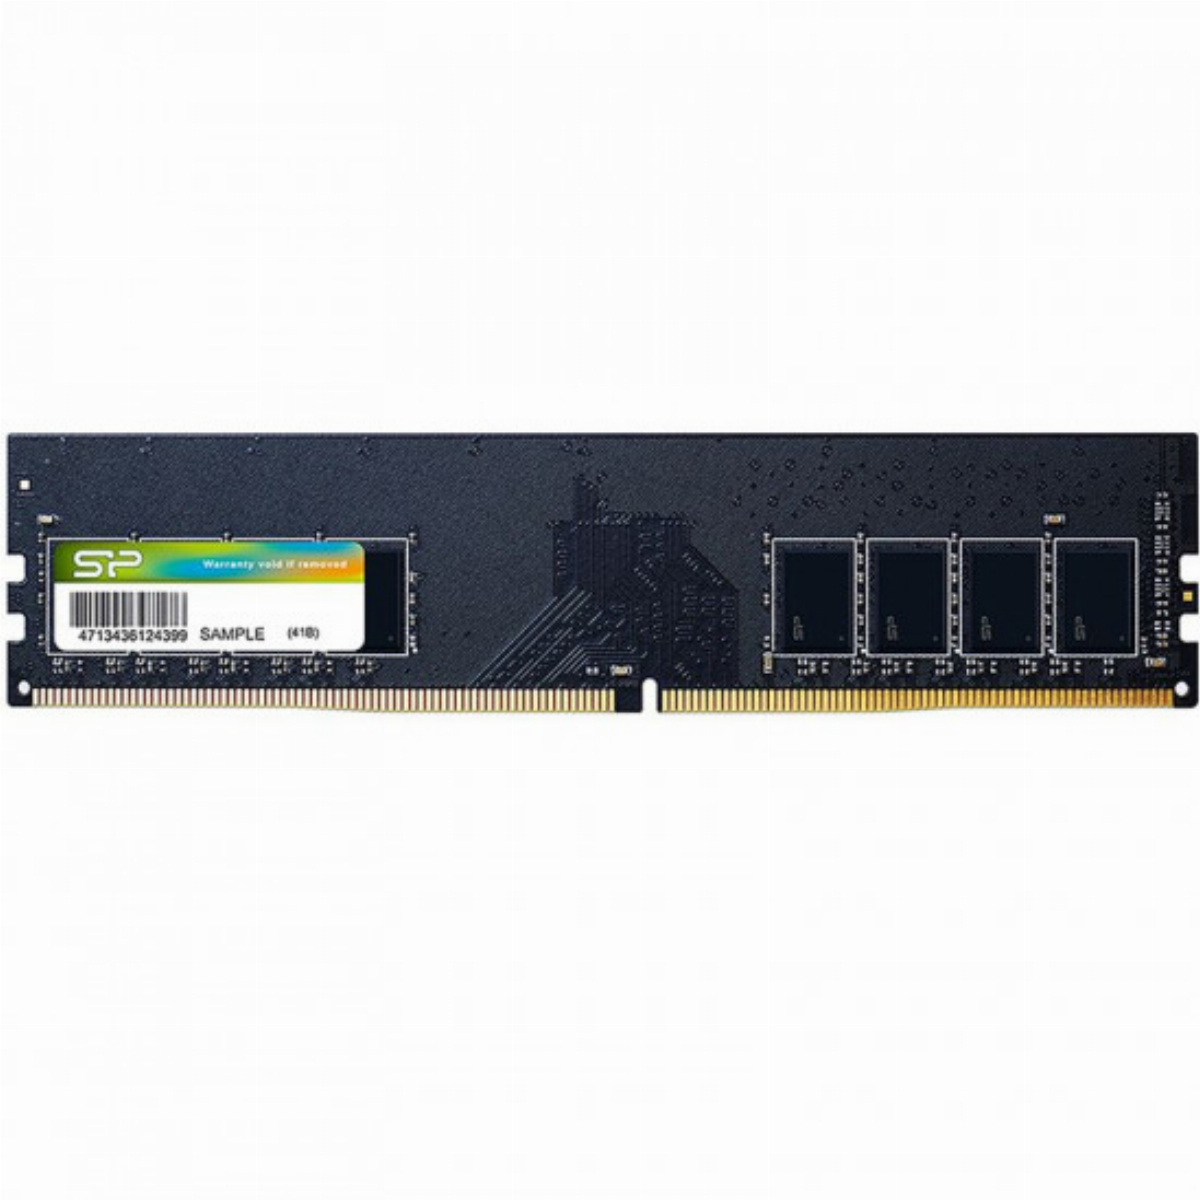 Памет Silicon Power 8GB DDR4 3200MHz UDIMM CL22